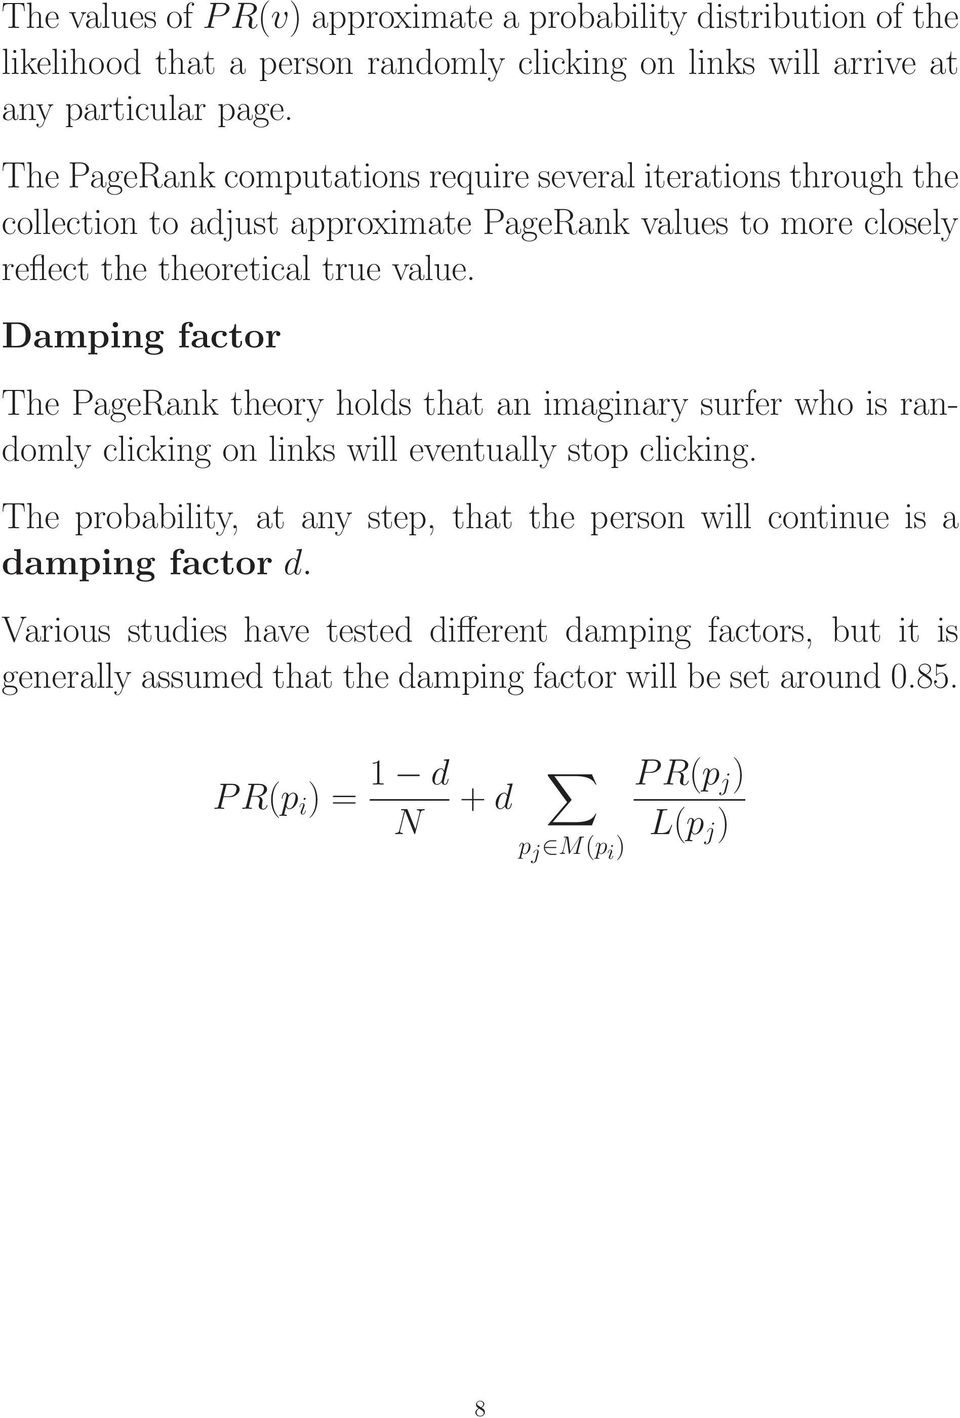 Damping factor The PageRank theory holds that an imaginary surfer who is randomly clicking on links will eventually stop clicking.